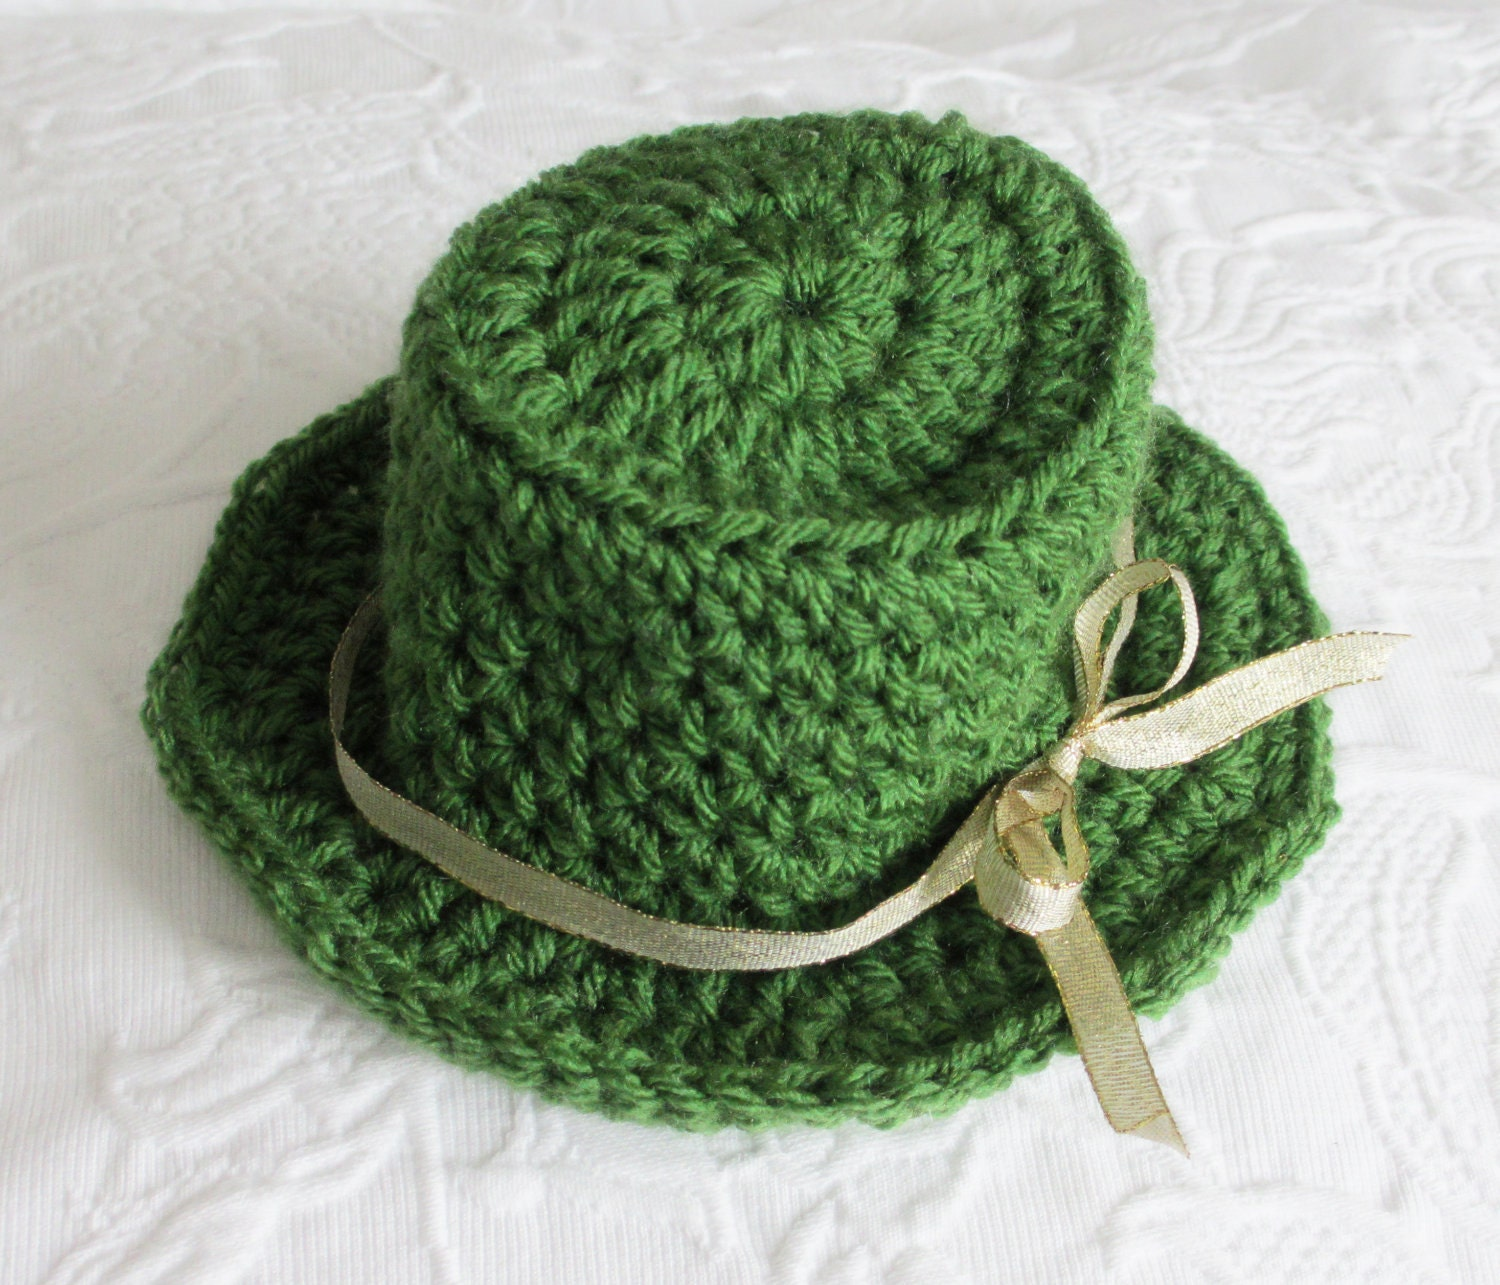 Best Crochet Patterns : CURLY TOP CROCHETED HAT PATTERN - Crochet and Knitting Patterns